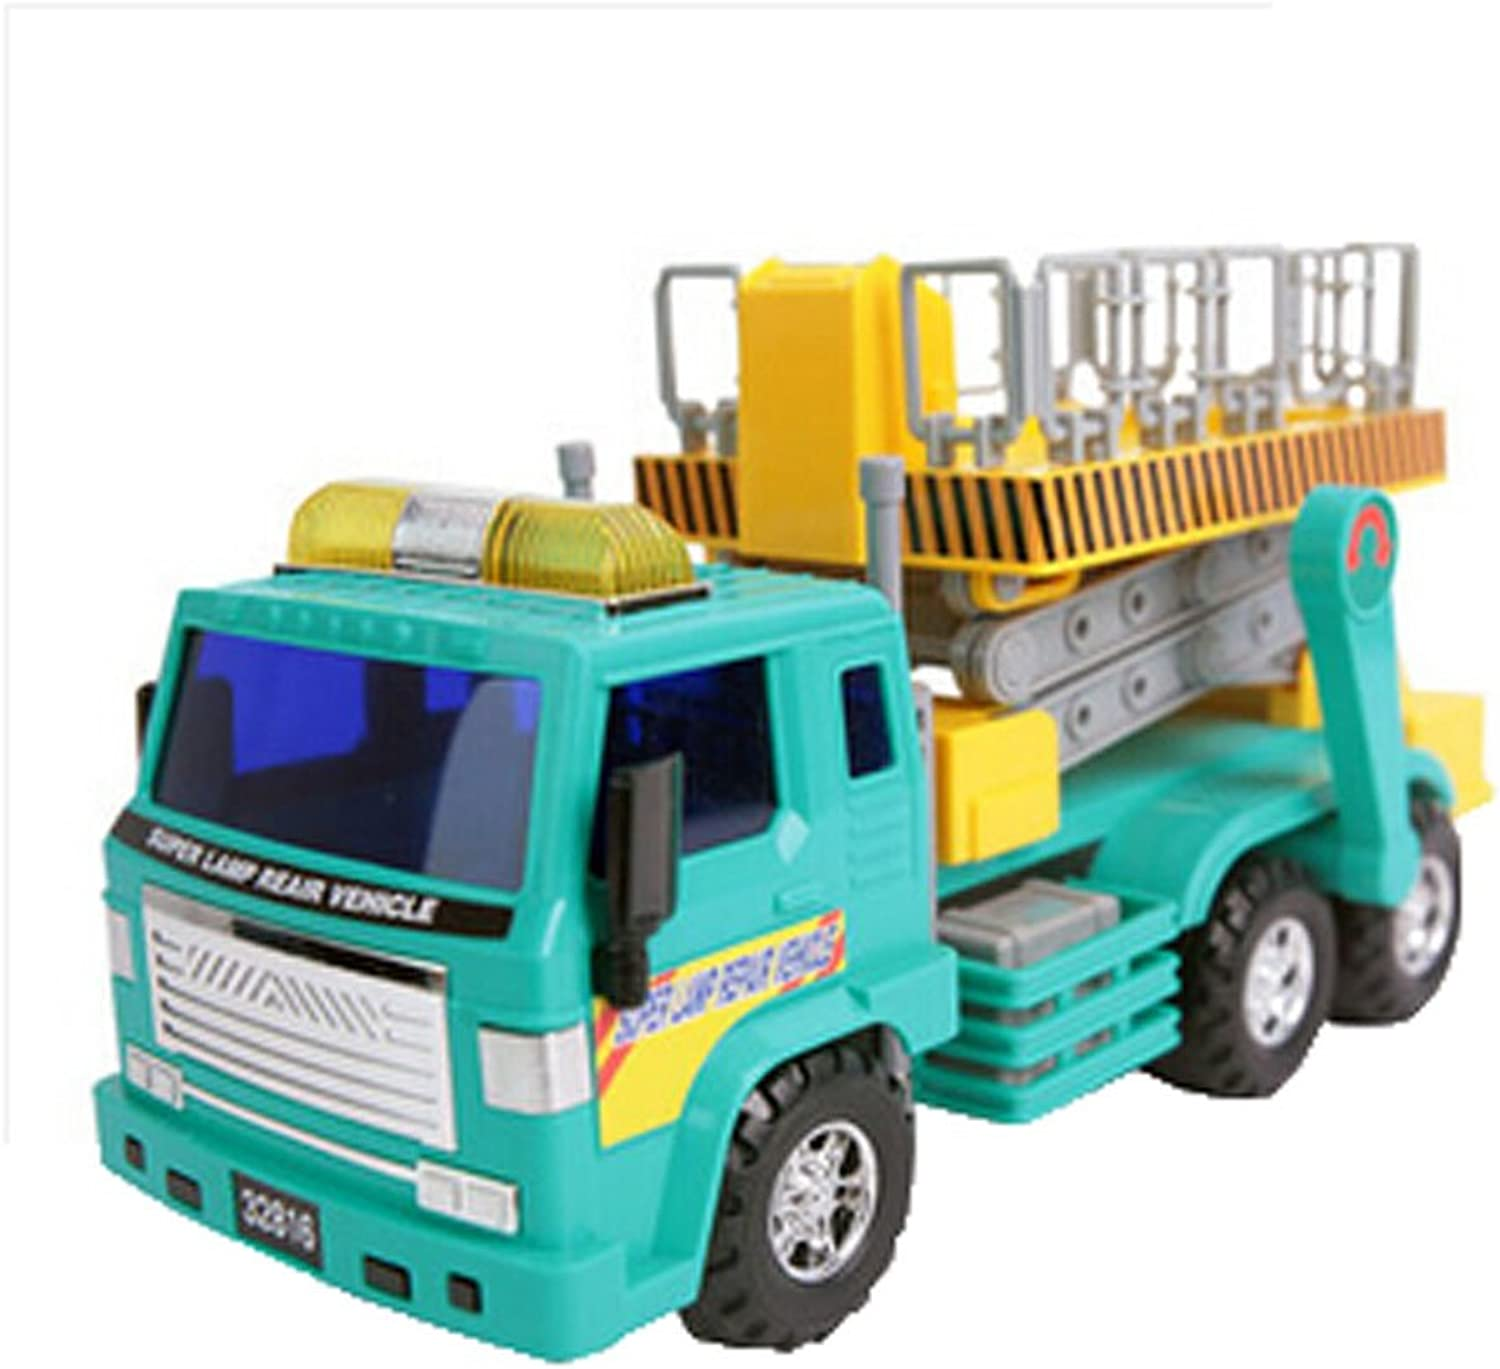 Engineering Transport Vehicle Toy,Road Engineering Vehicle